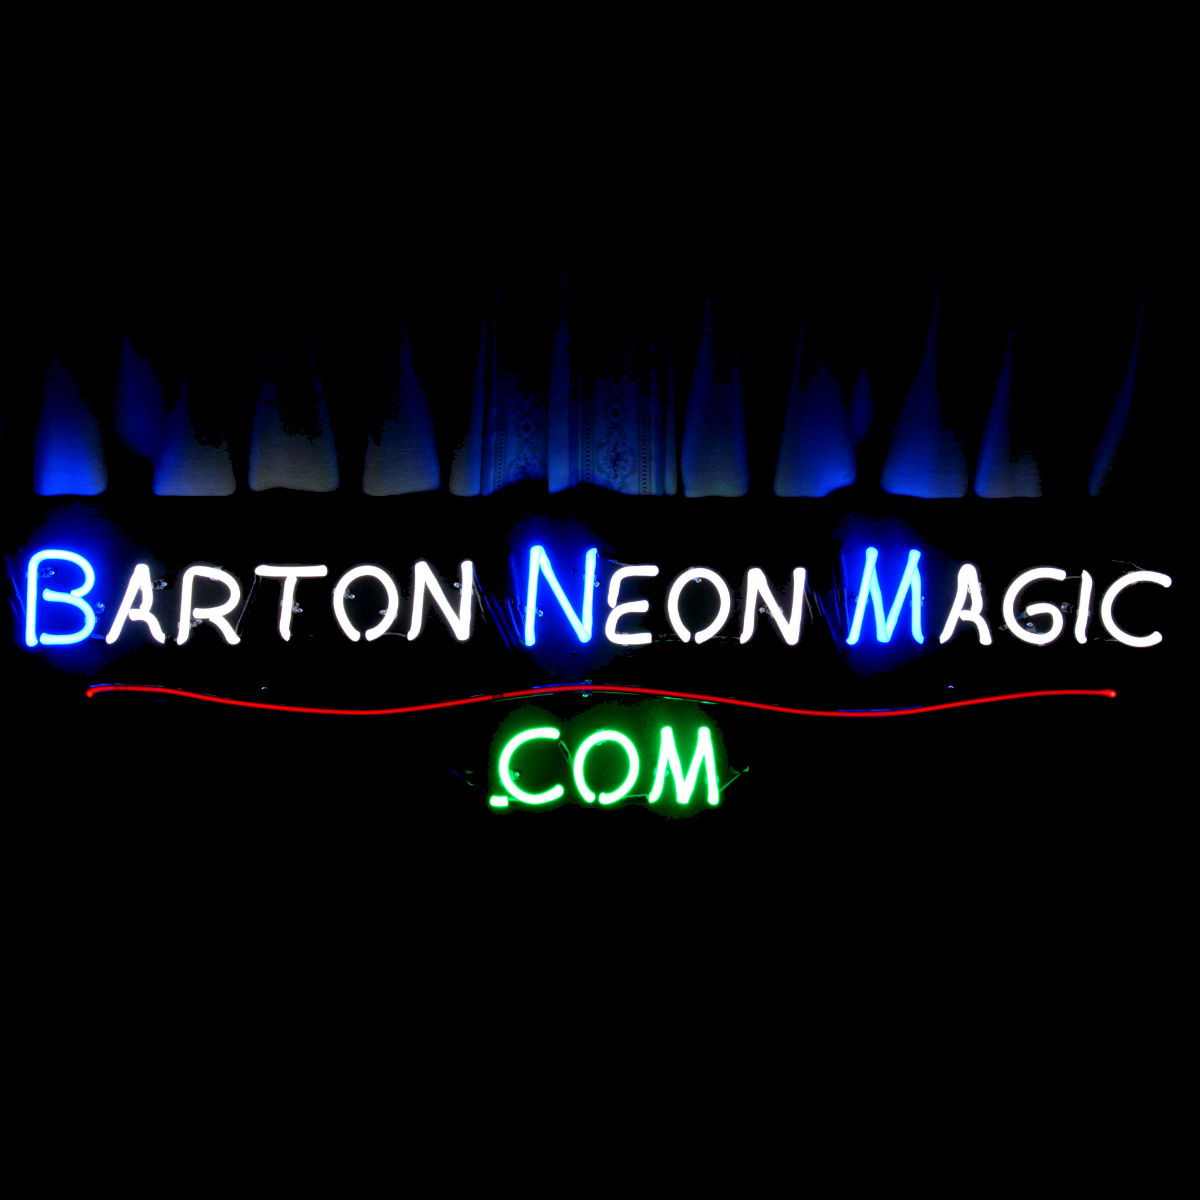 BartonNeonMagic.com - Finest Quality Custom Neon Signs, Chandeliers, Artworks, and Sculptures - by John Barton - Internationally Renowned USA Neon Glass Artist